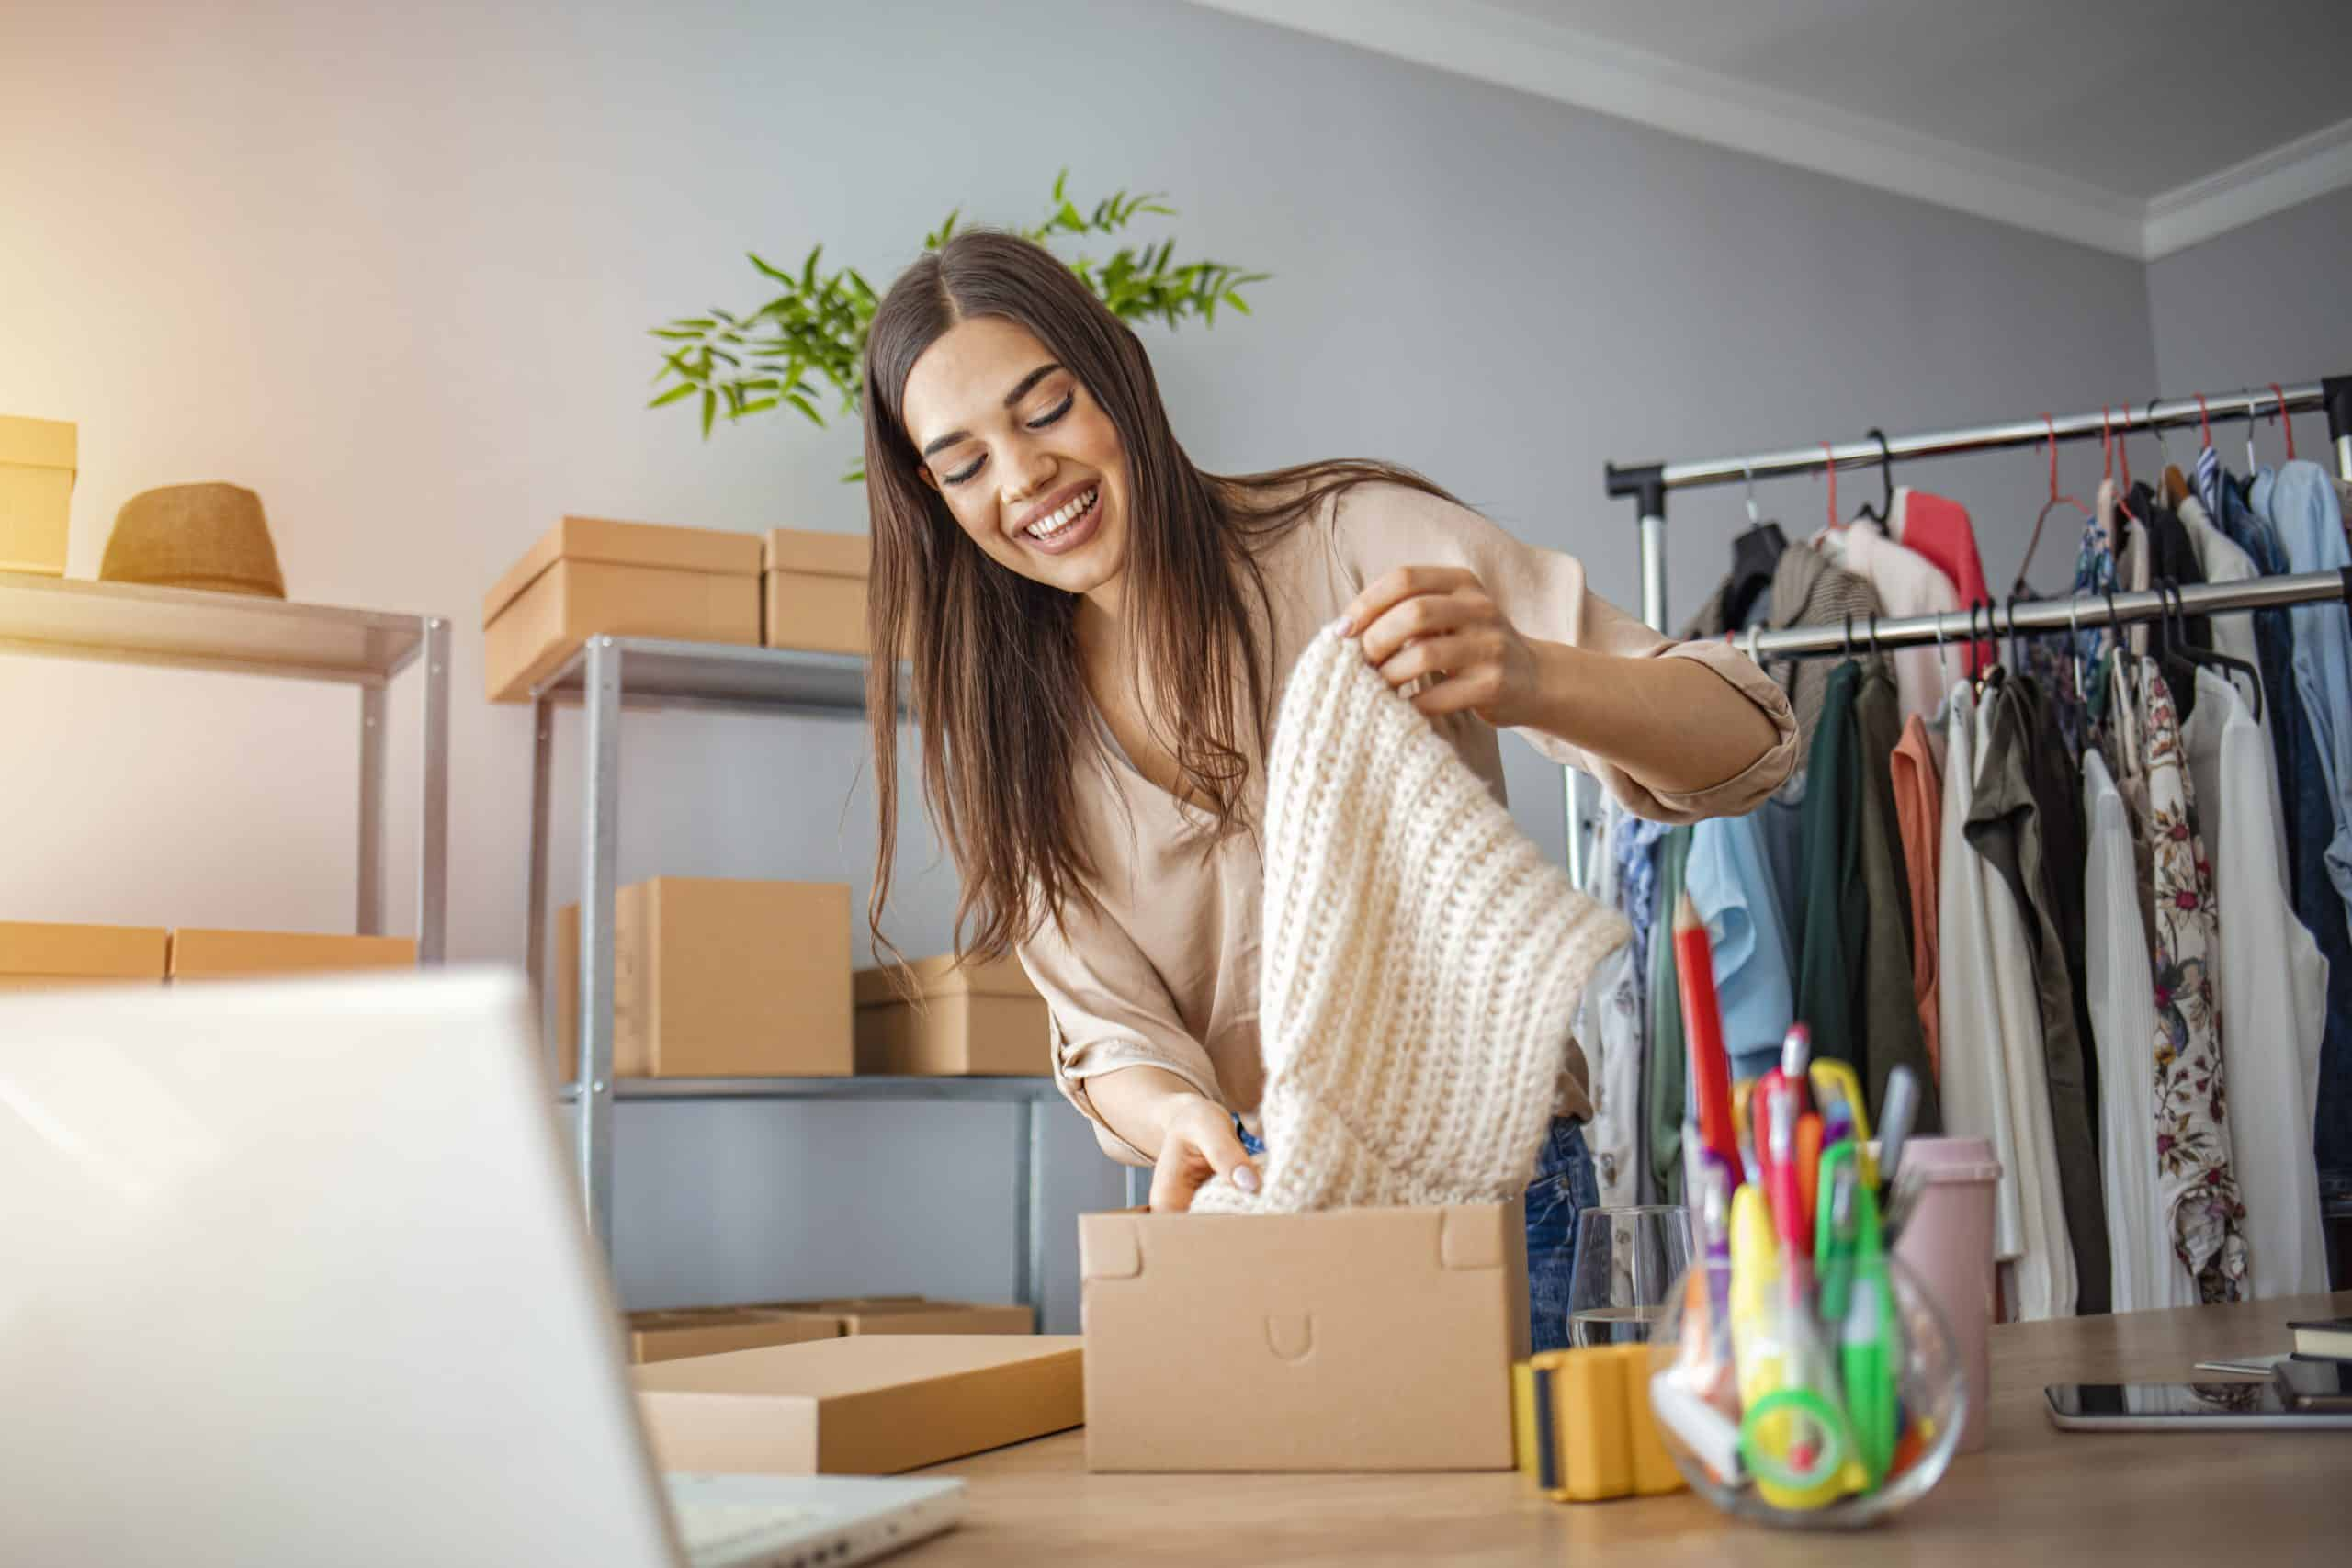 Young woman selling products online and packaging goods for shipping. She is representavie of the SME owners that the Amazon launchpad startup of the year award is trying to celebrate